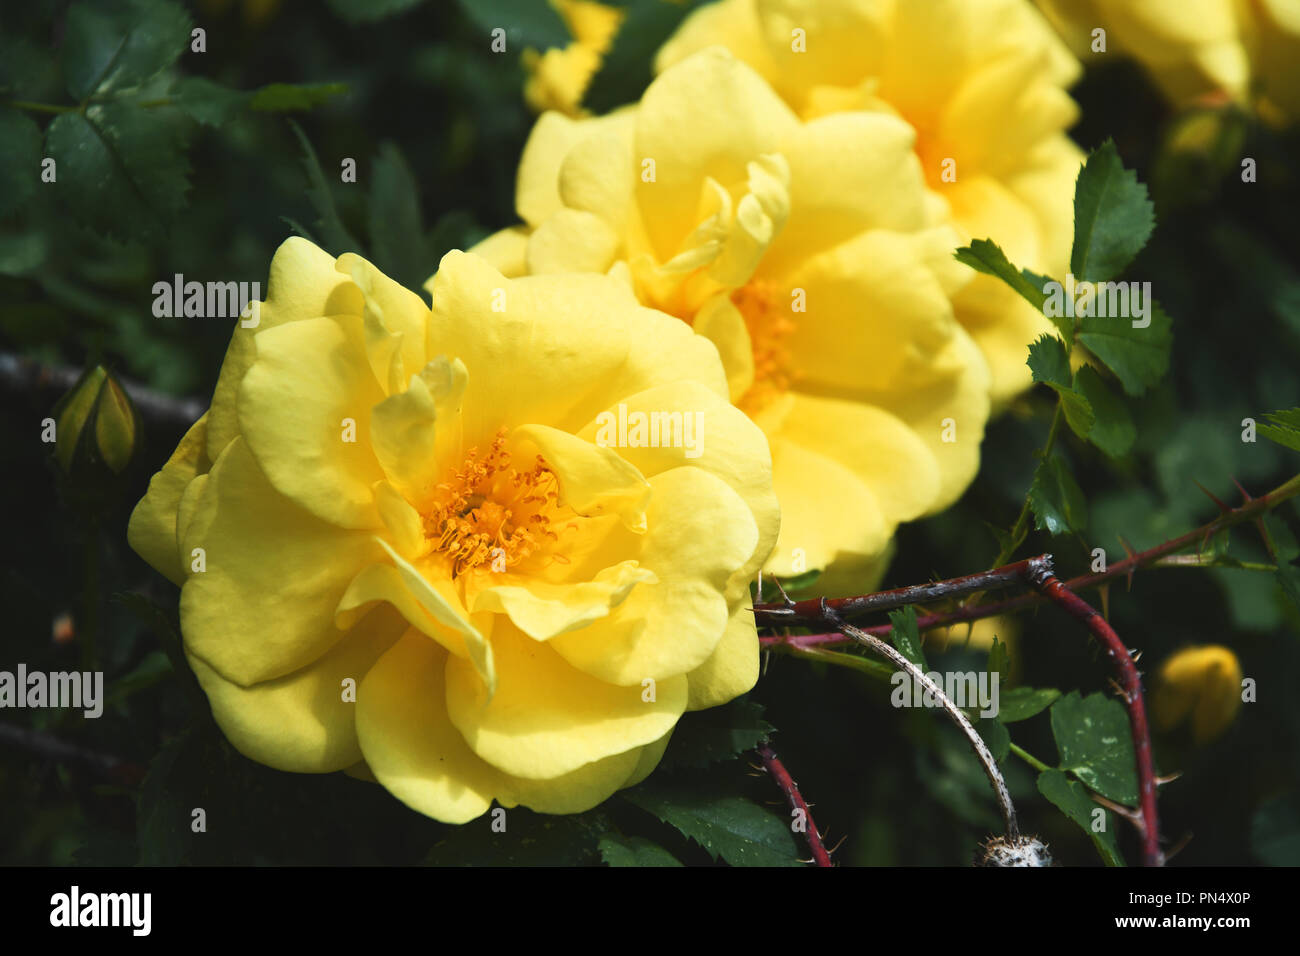 Three yellow roses lined up in a row on a shrub Stock Photo